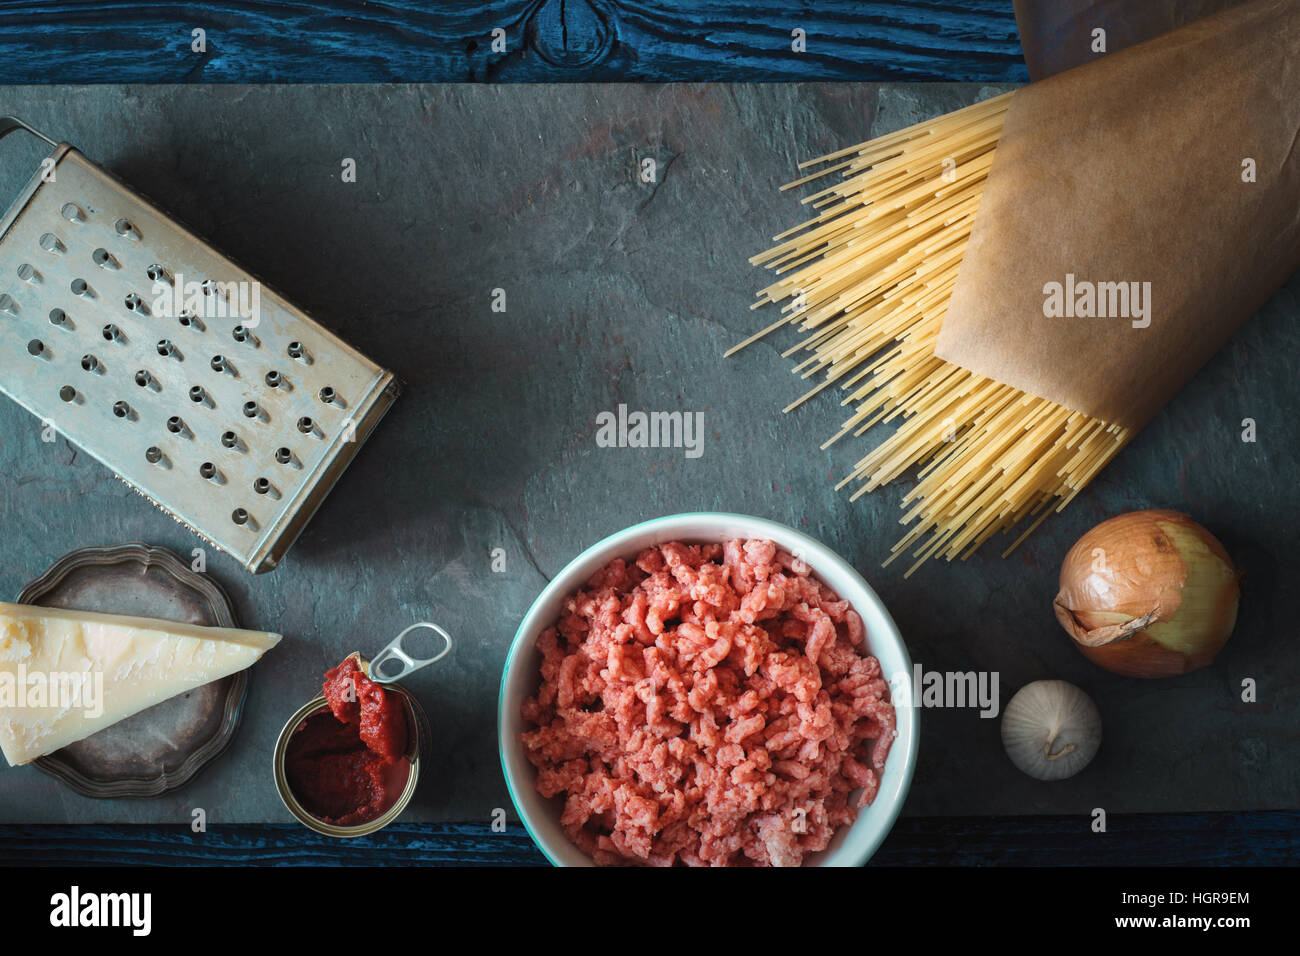 Ingredients for spaghetti with meatball on the stone background horizontal - Stock Image